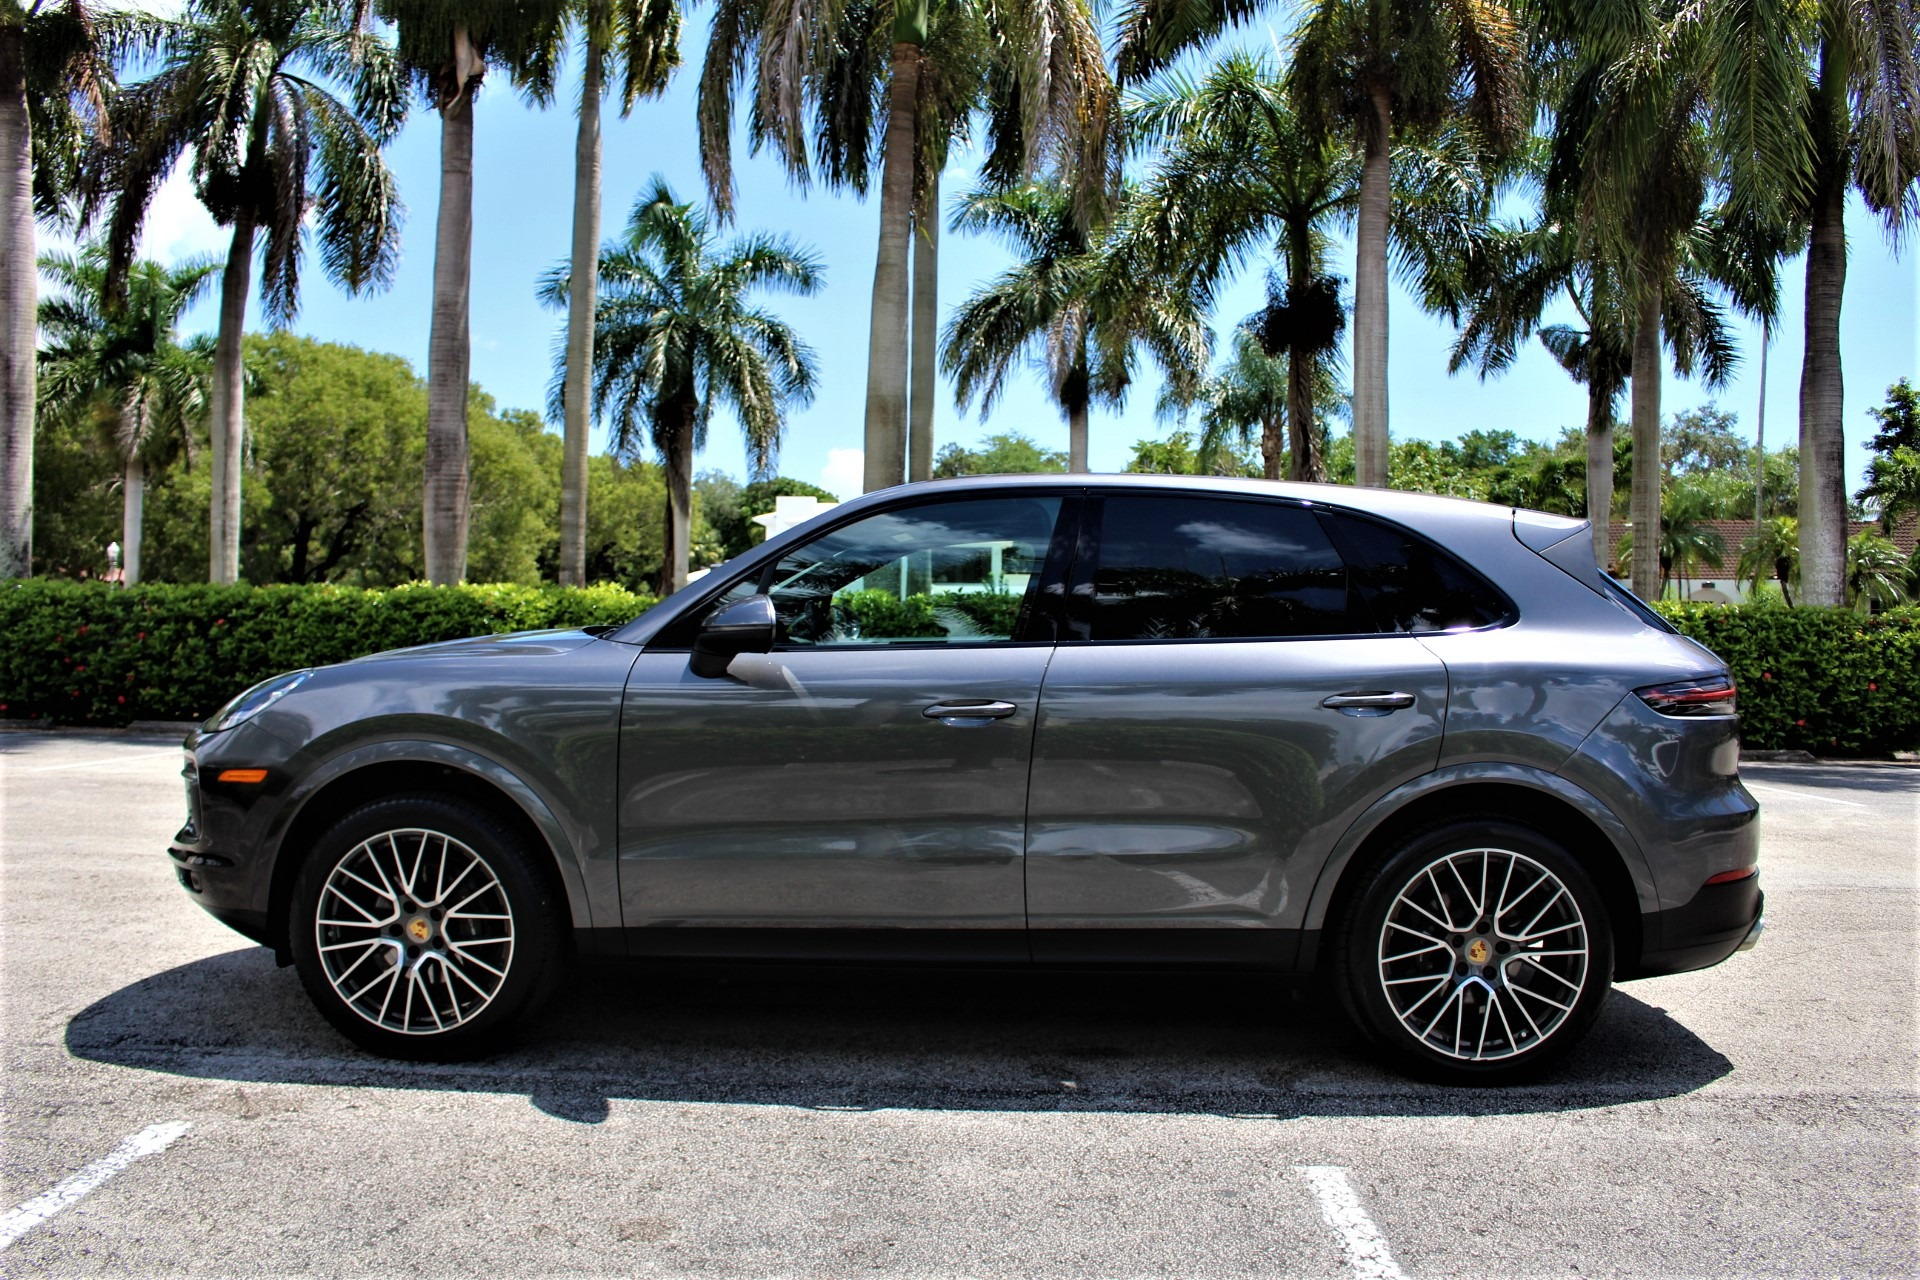 Used 2019 Porsche Cayenne for sale Sold at The Gables Sports Cars in Miami FL 33146 3